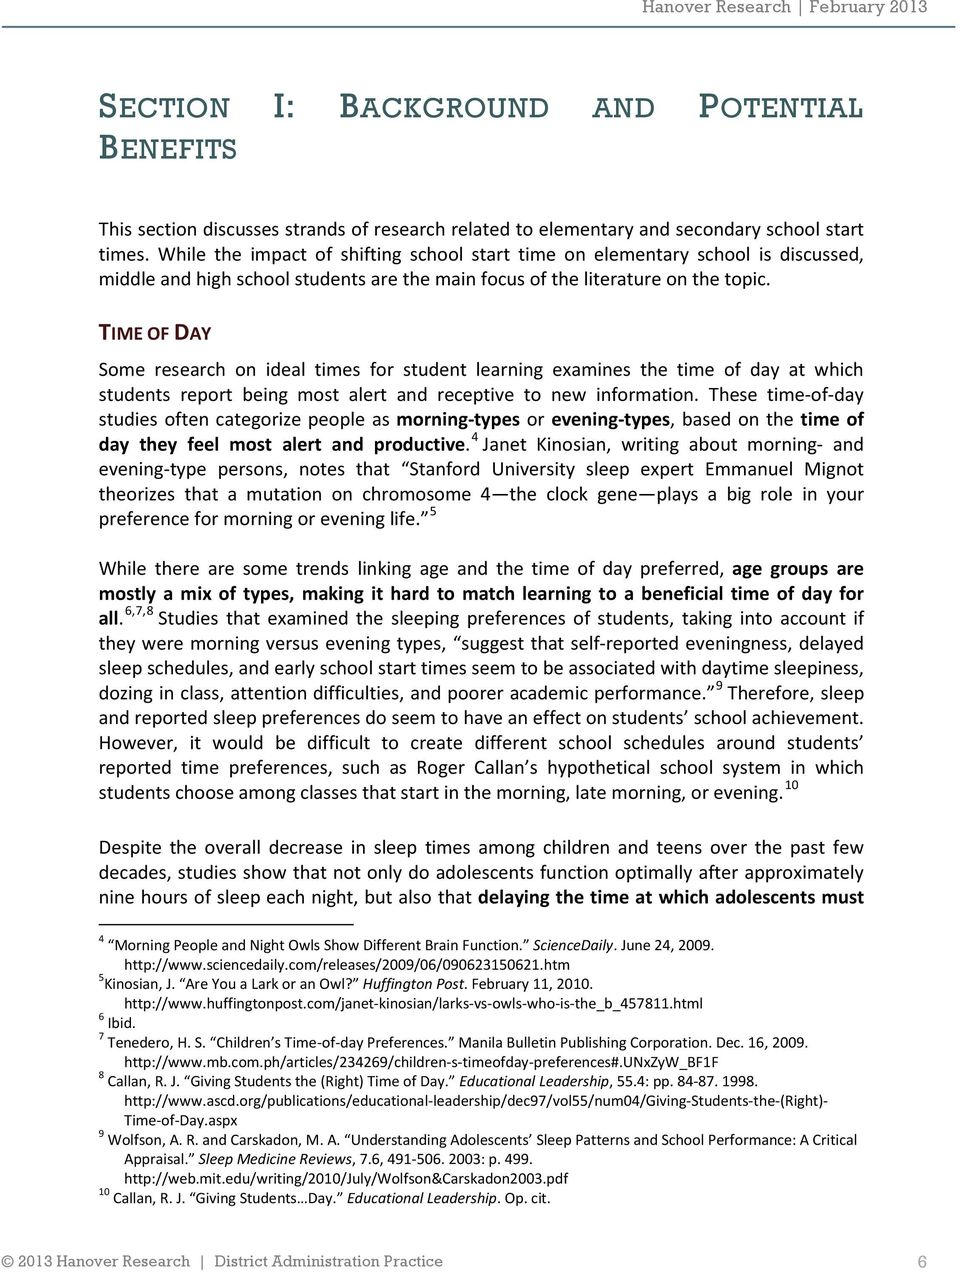 TIME OF DAY Some research on ideal times for student learning examines the time of day at which students report being most alert and receptive to new information.